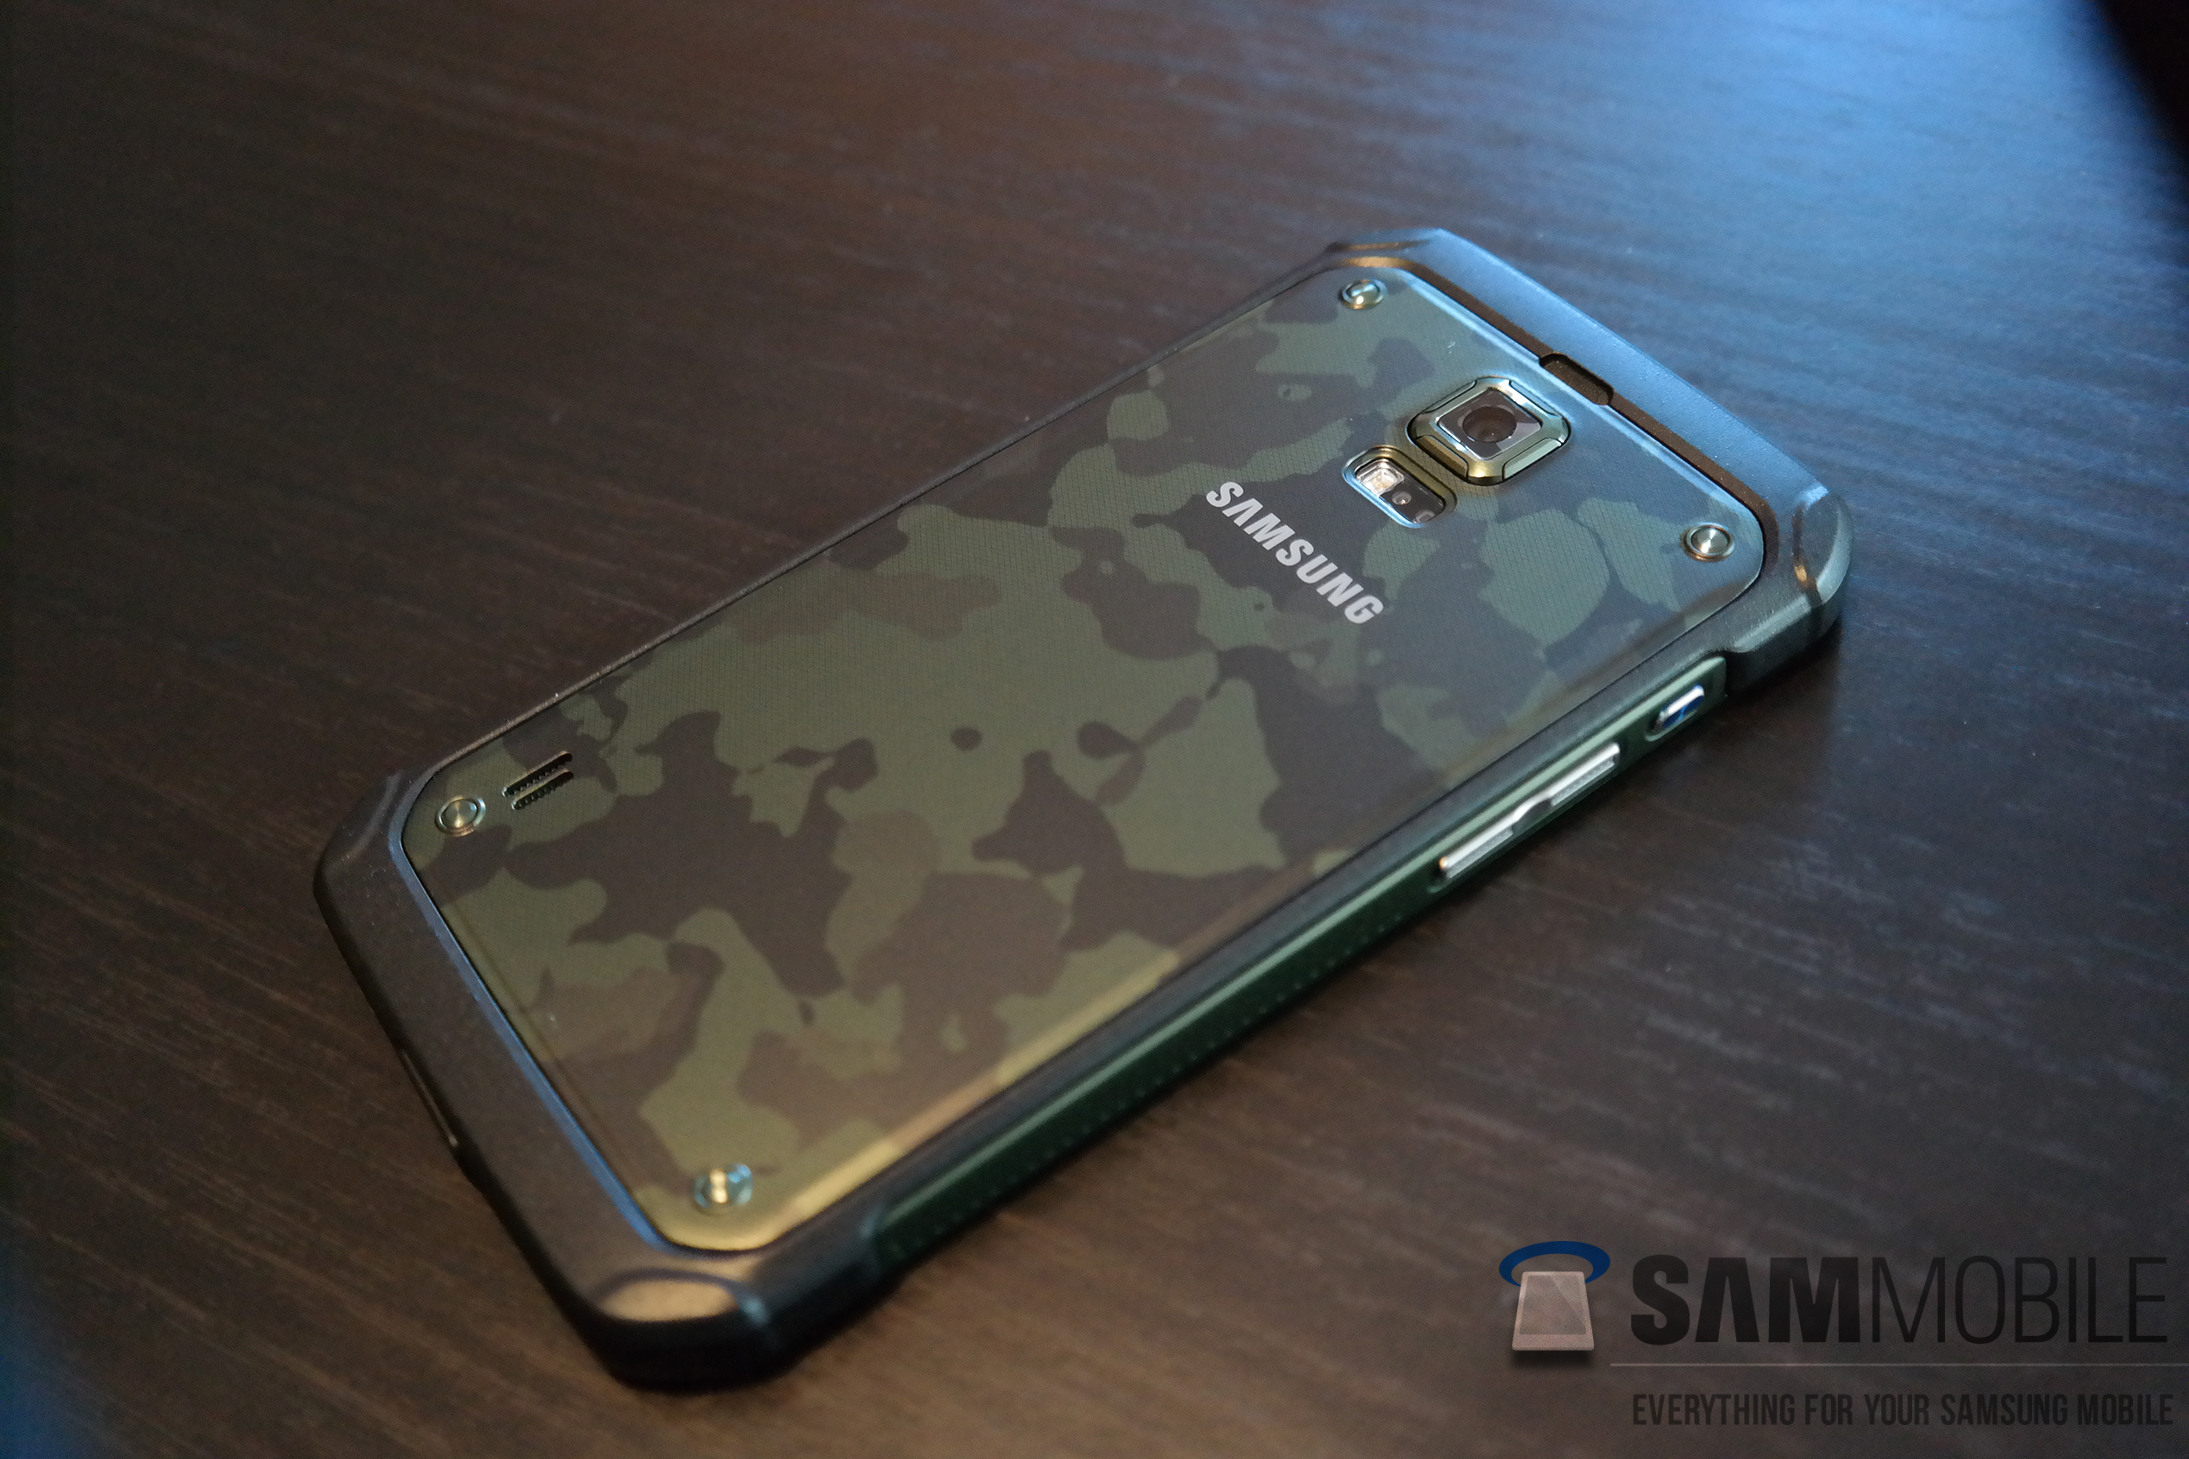 Exclusive: Samsung Galaxy S5 Active for Europe